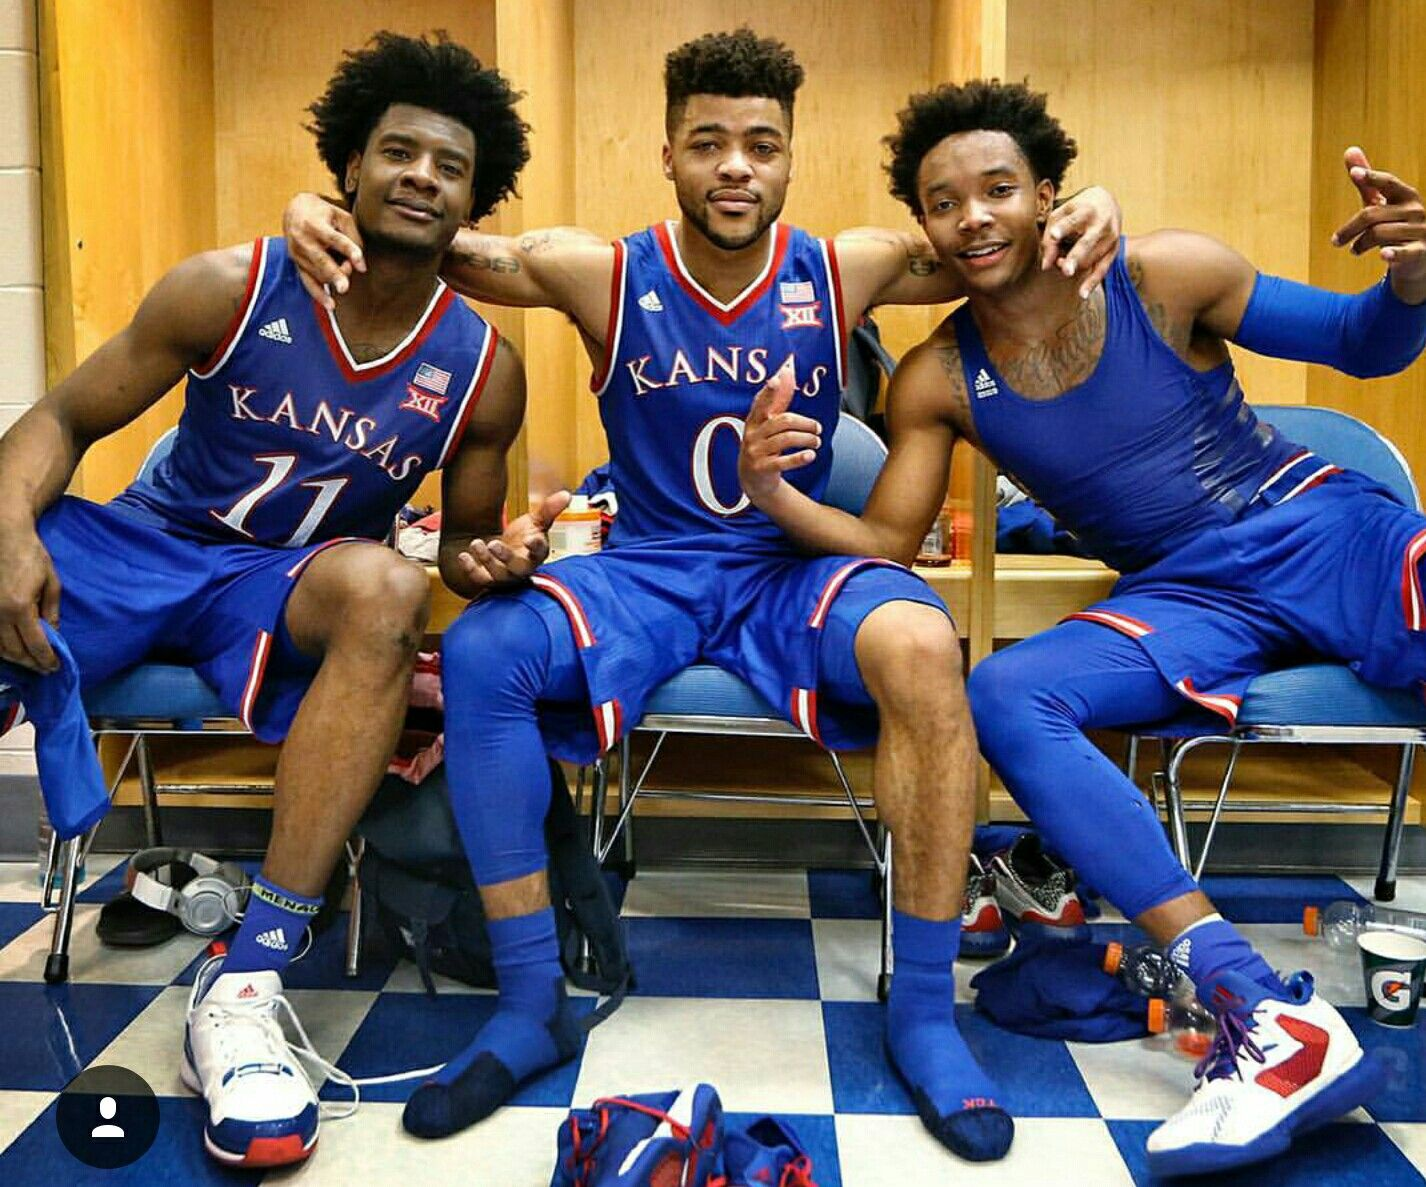 e12971c92a0 Kansas Jayhawks Josh Jackson, Frank Mason III & Devonte' Graham 2016-2017.  Thrilling to watch these men.